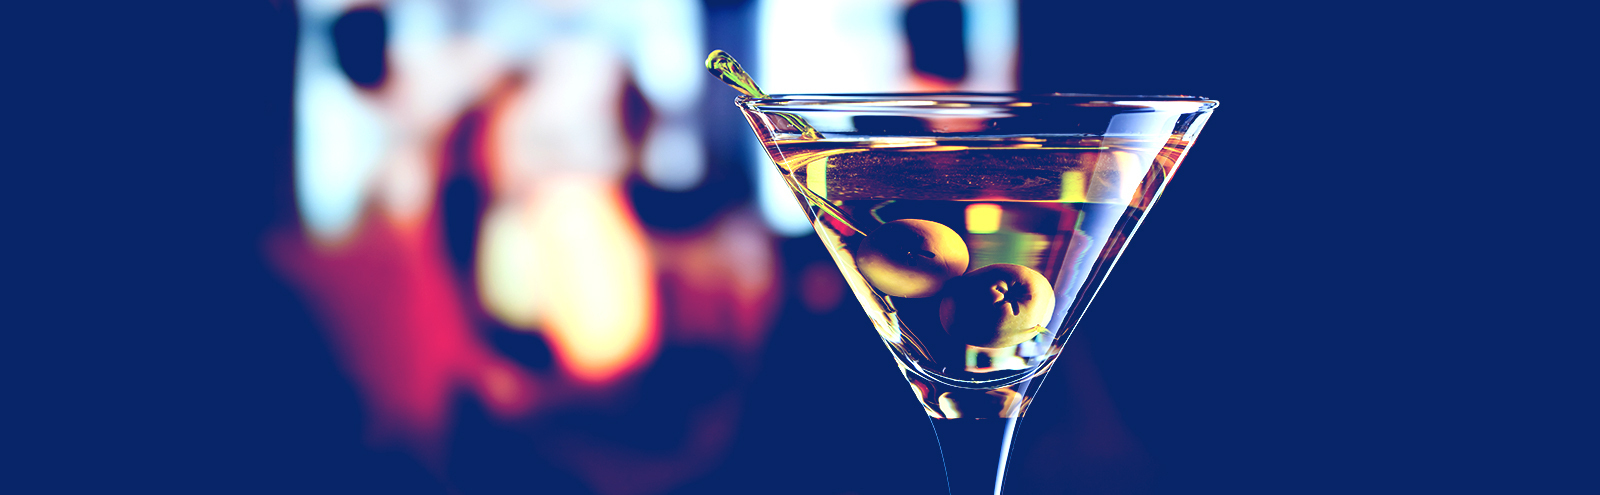 Easy Cocktail Recipes For The Blossoming Home Bartender